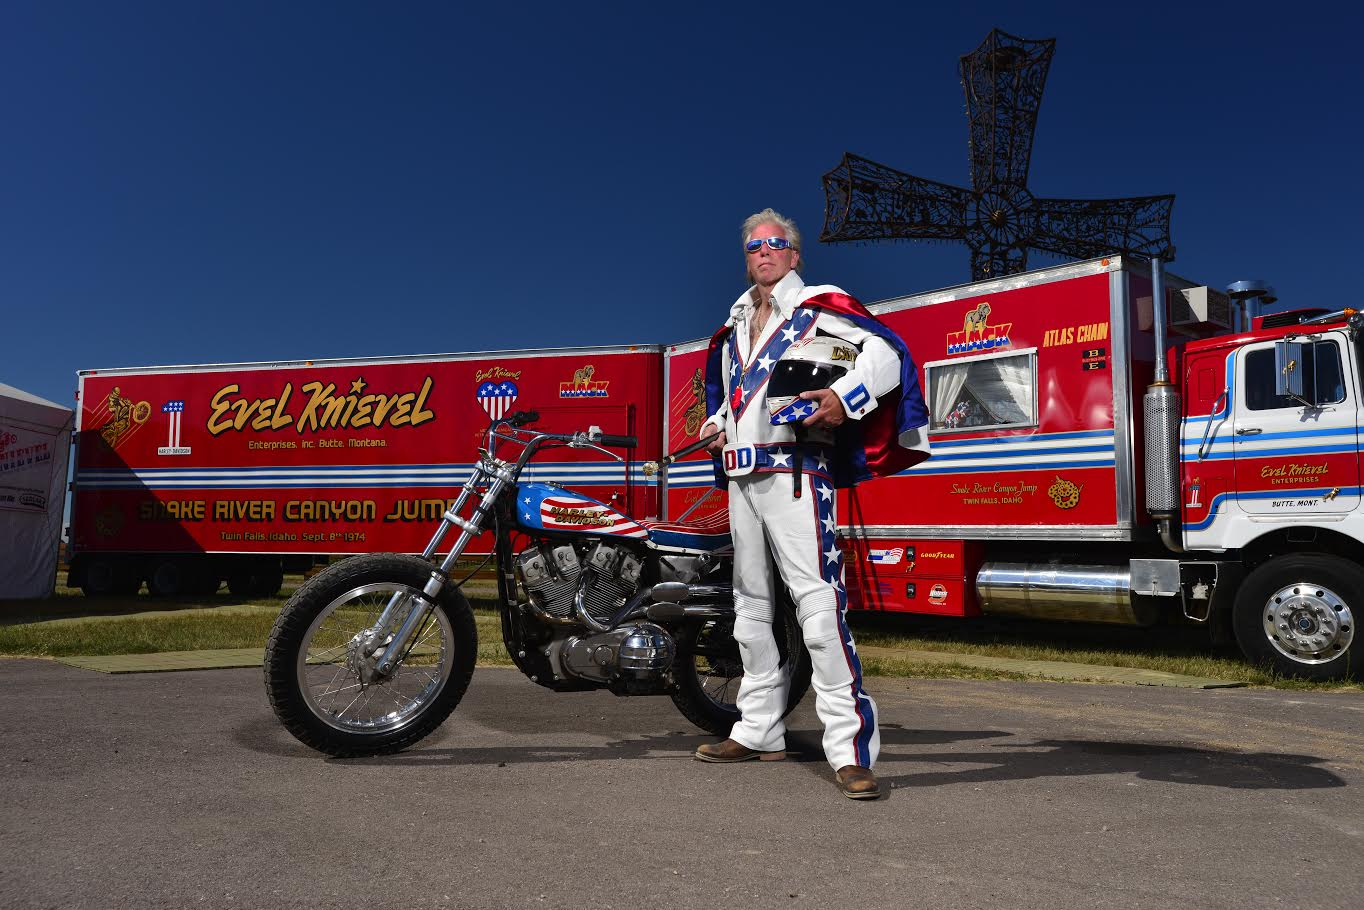 Duecilindri Evel Knievel Xr750: The Evel Knievel Thrill Show Authentic Americana And Big